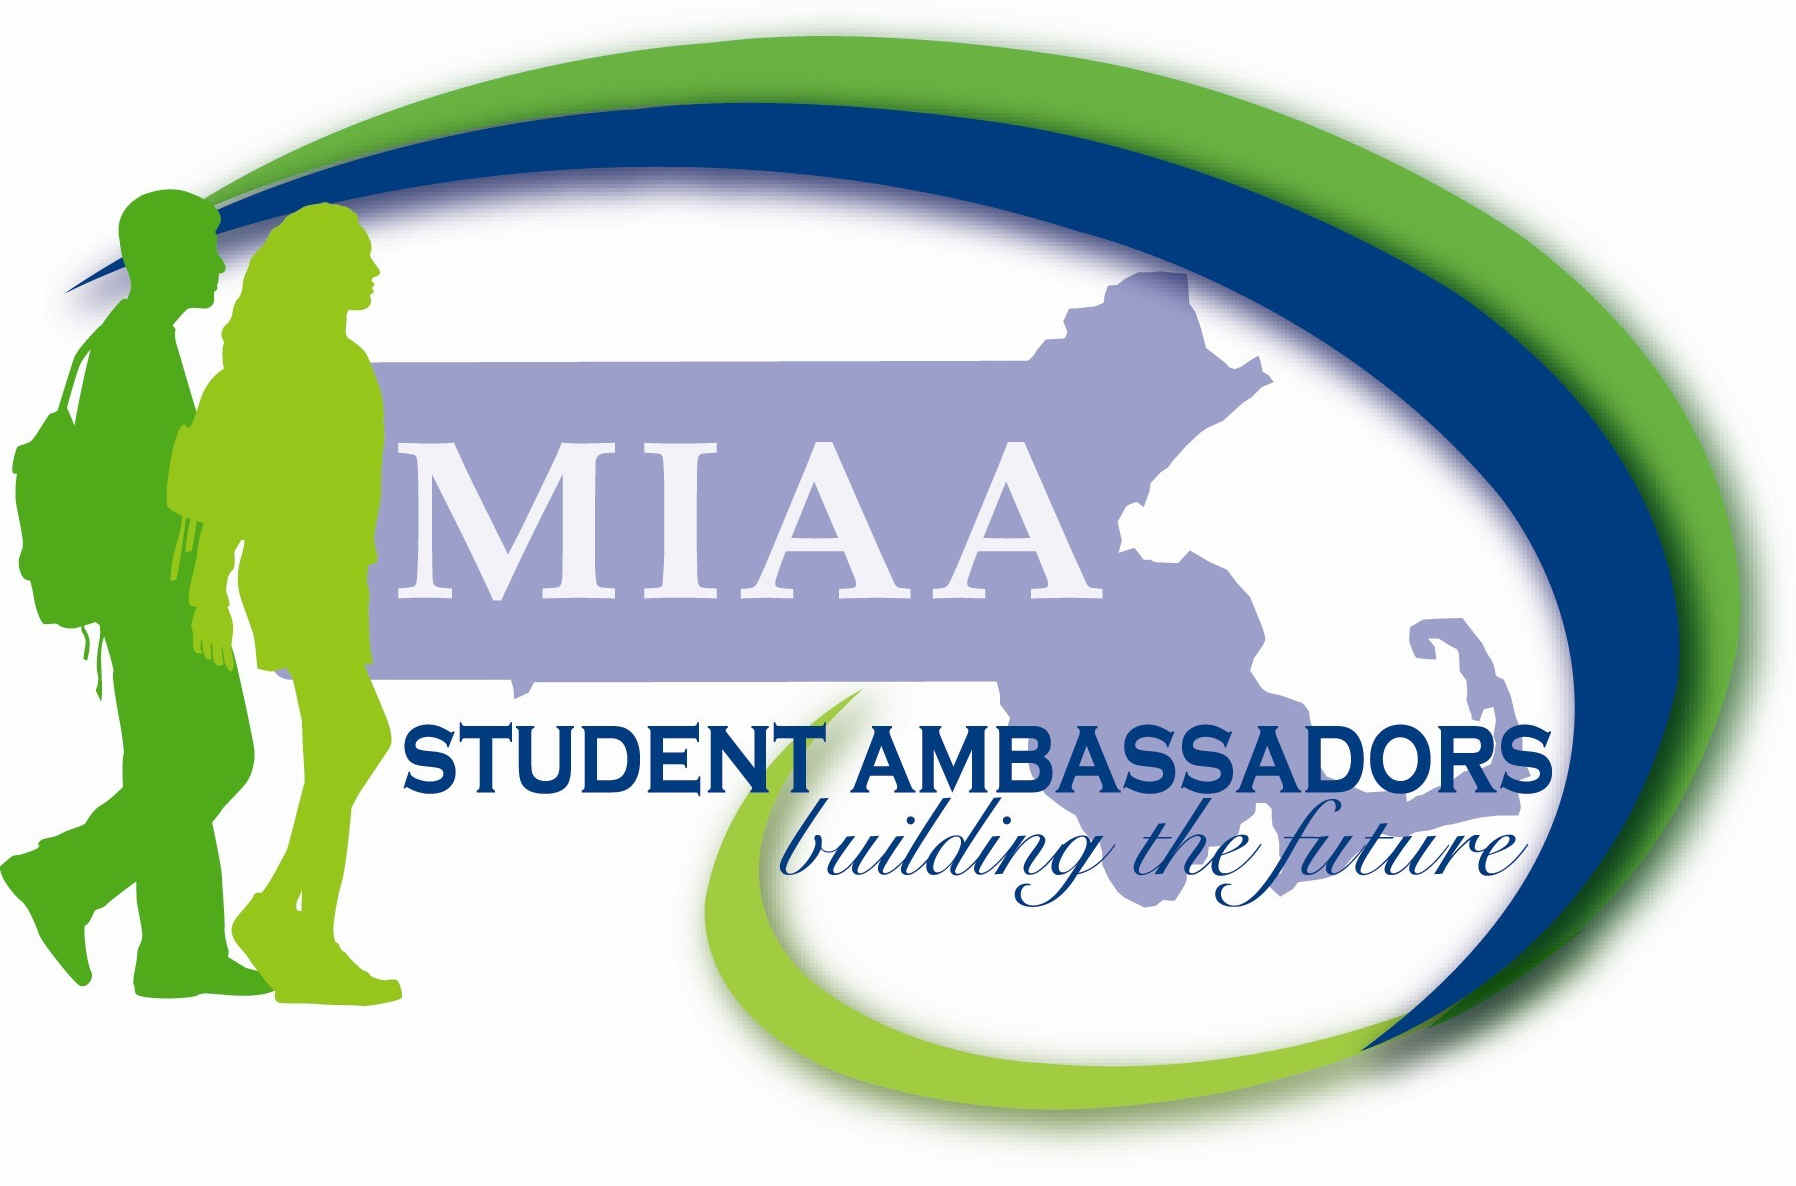 miaa essay contest 2008 Participants: contest is open to all students in grades 9-12 at miaa member  schools  contest winners will present their entries as honored guests during the  23rd annual  miaa essay contest, 33 forge parkway, franklin, ma 02038.